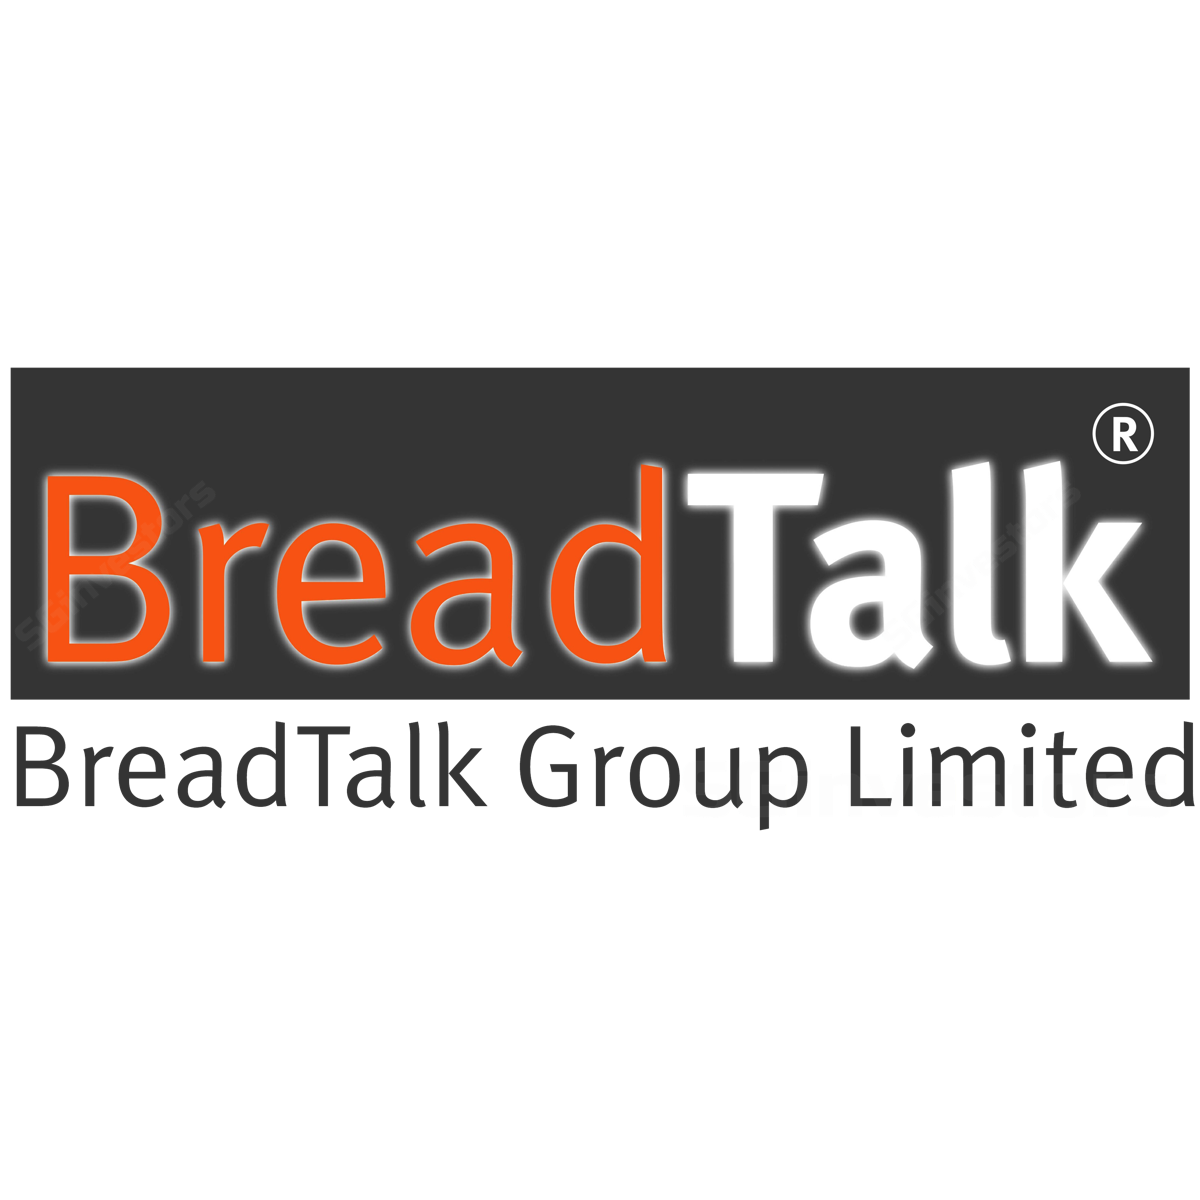 Breadtalk Group Ltd - DBS Vickers 2017-11-07: Dough Is Holding Shape